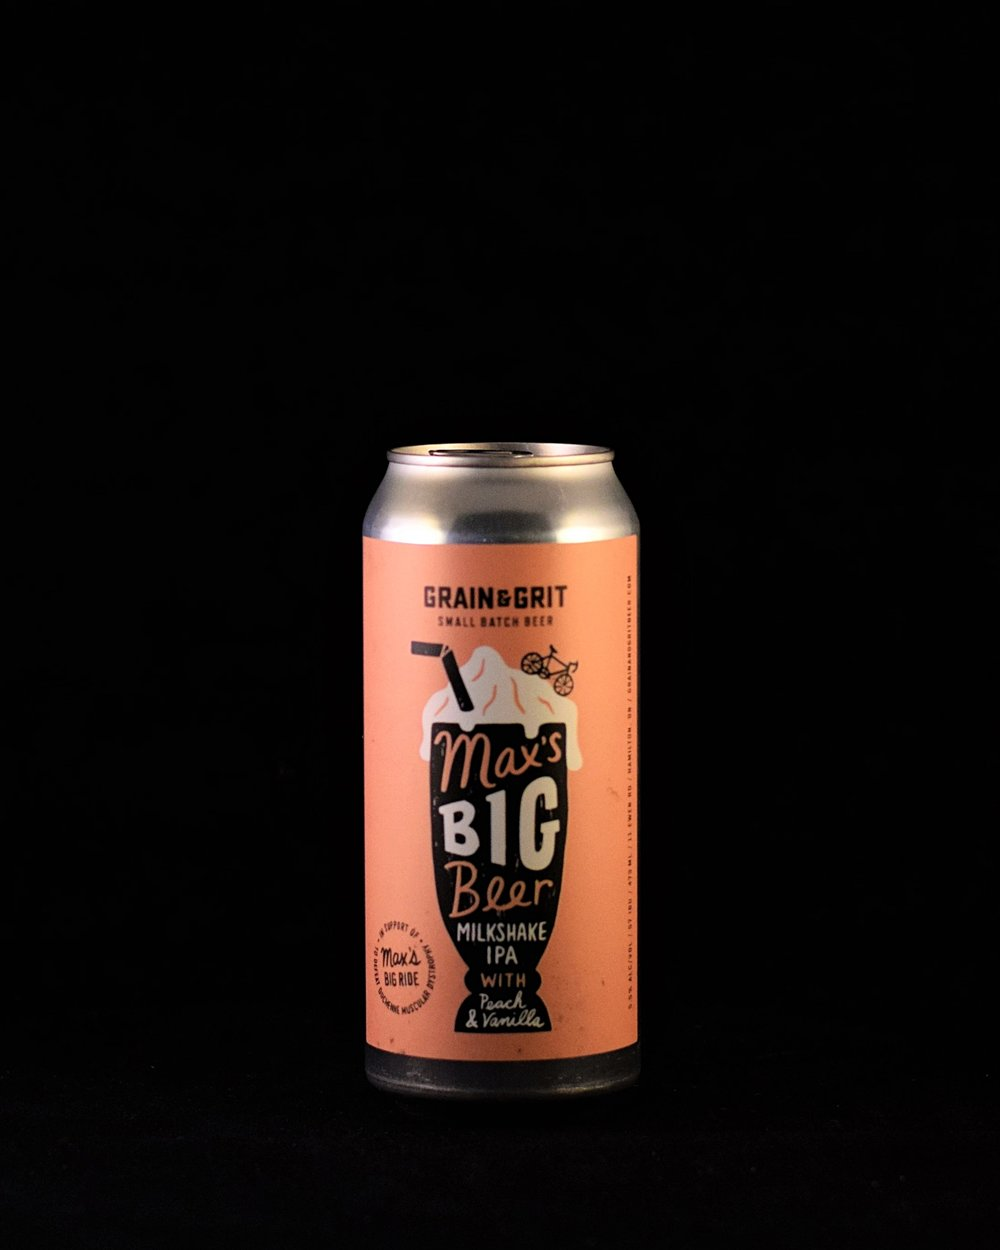 Grain & Grit - Max's Big Beer